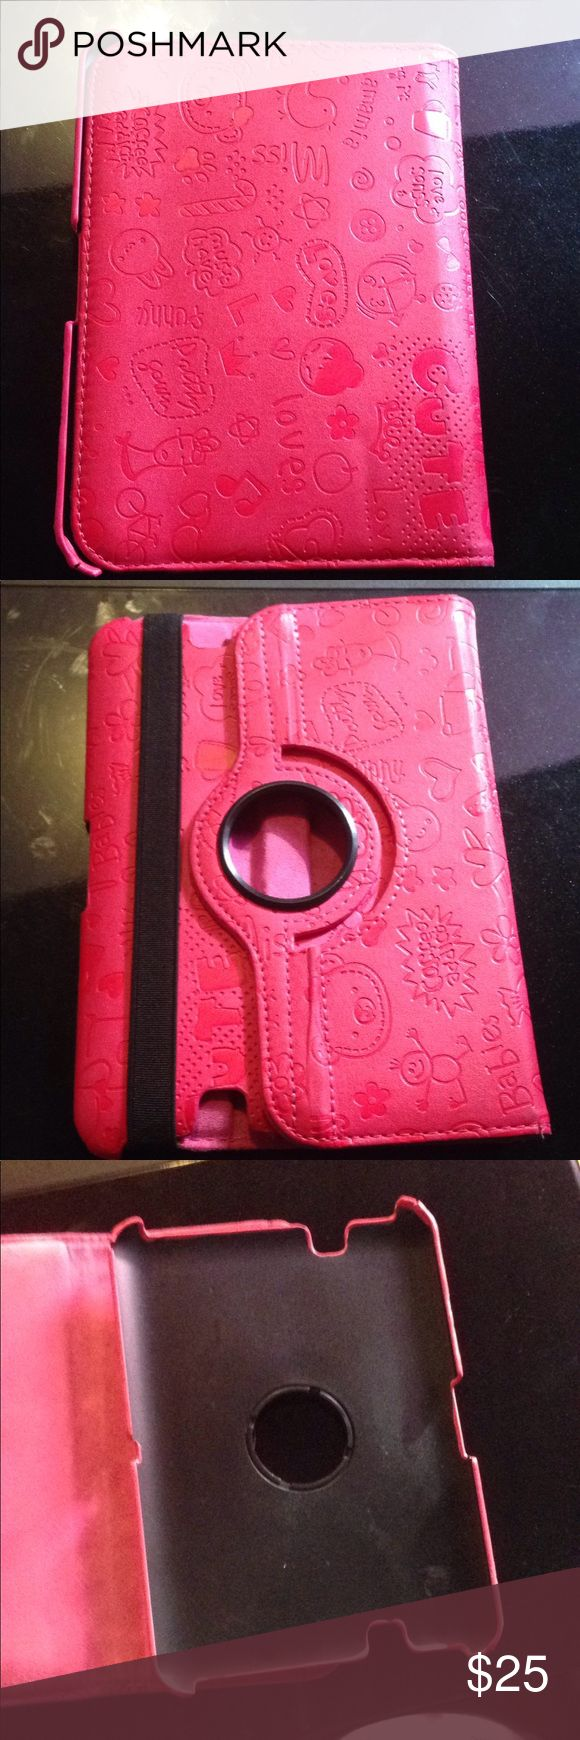 Kindle fire HD 7 Case This is a Kindle fire HD seven case. Is the color hot pink. It is more of like a cartoon pink case. It has been used but still in great condition. The flaws are above but they are small.                Accepting reasonable offers Accessories Tablet Cases